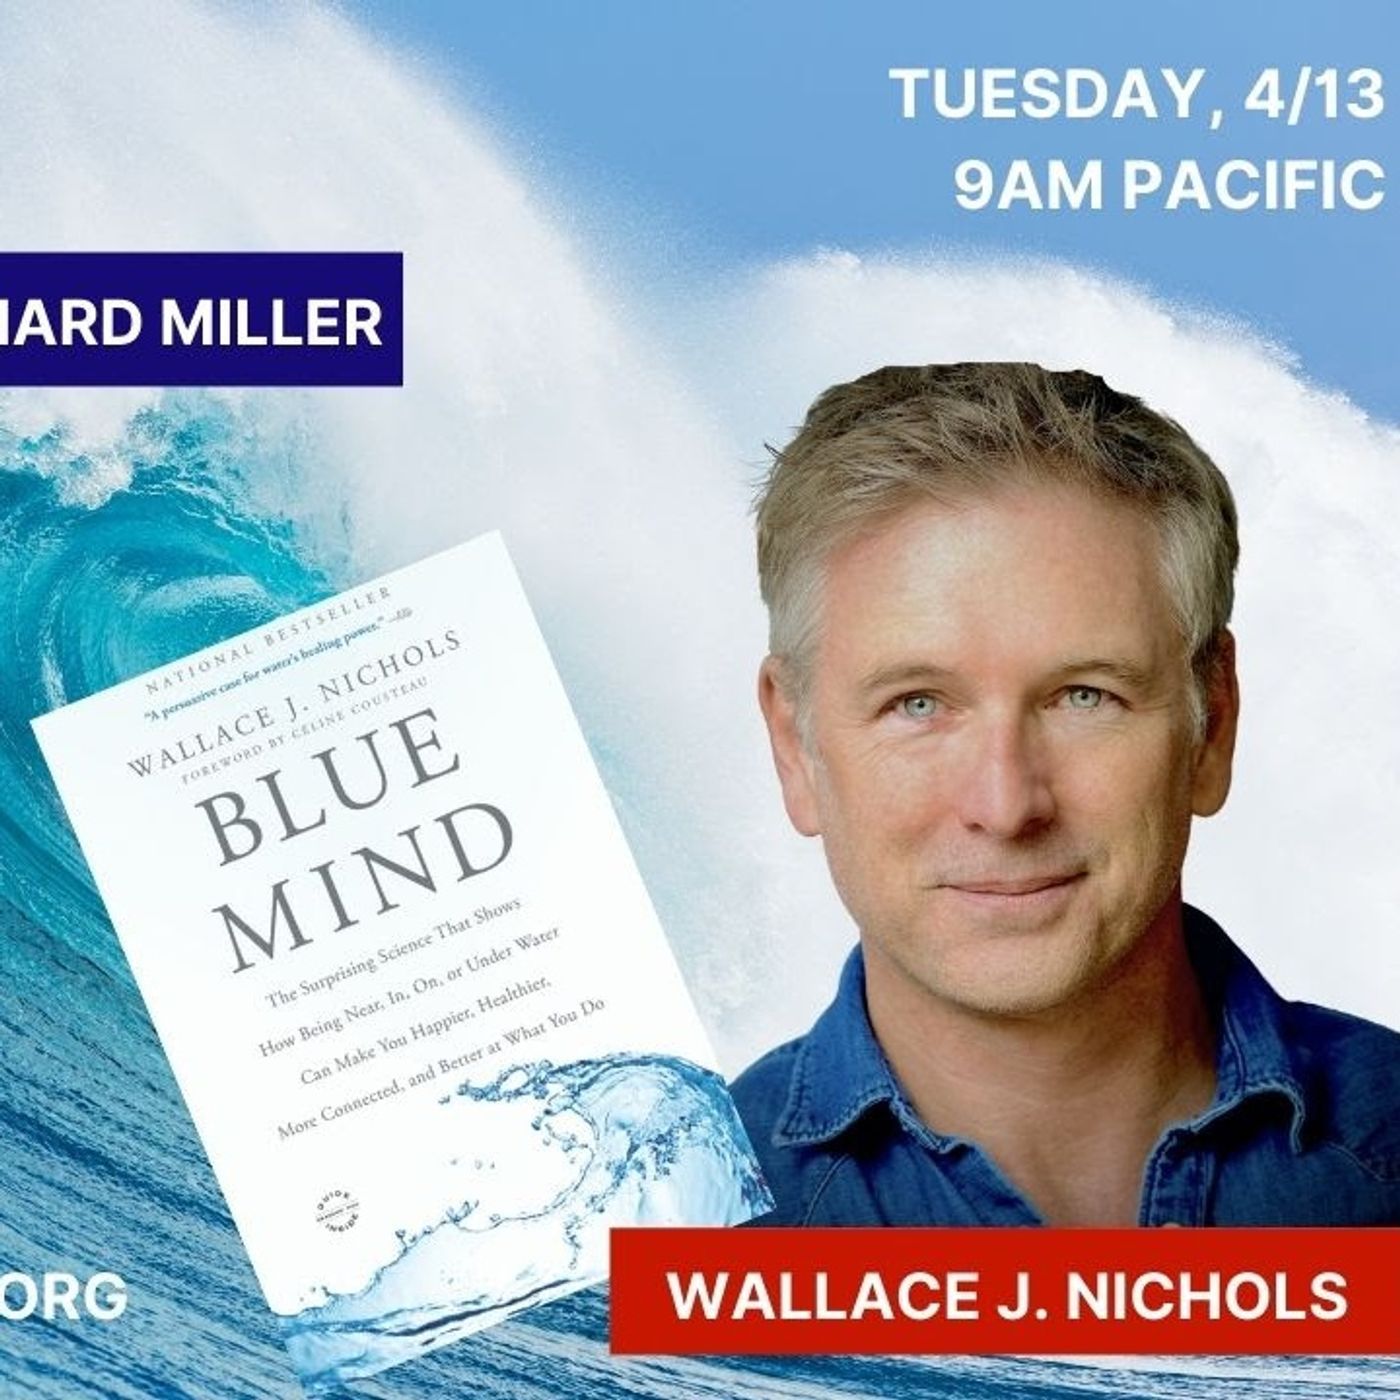 World's Foremost Water Healer: Dr. Wallace J. Nichols